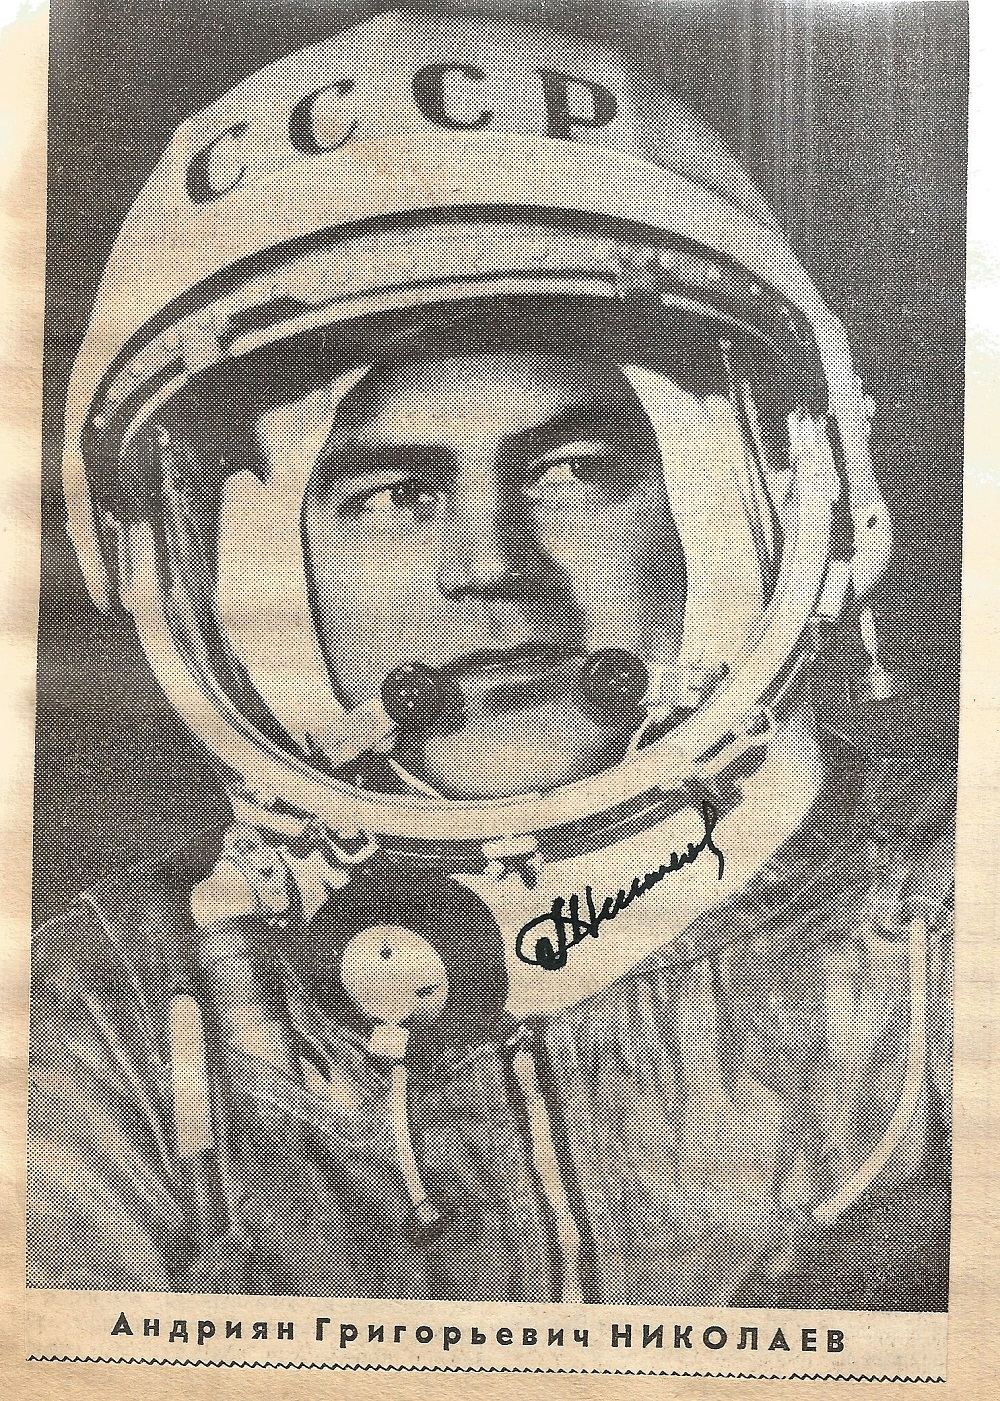 1950/60s Russian Cosmonauts multiple signed hard backed scrapbook compiled by a worker at Baikonur - Image 13 of 22